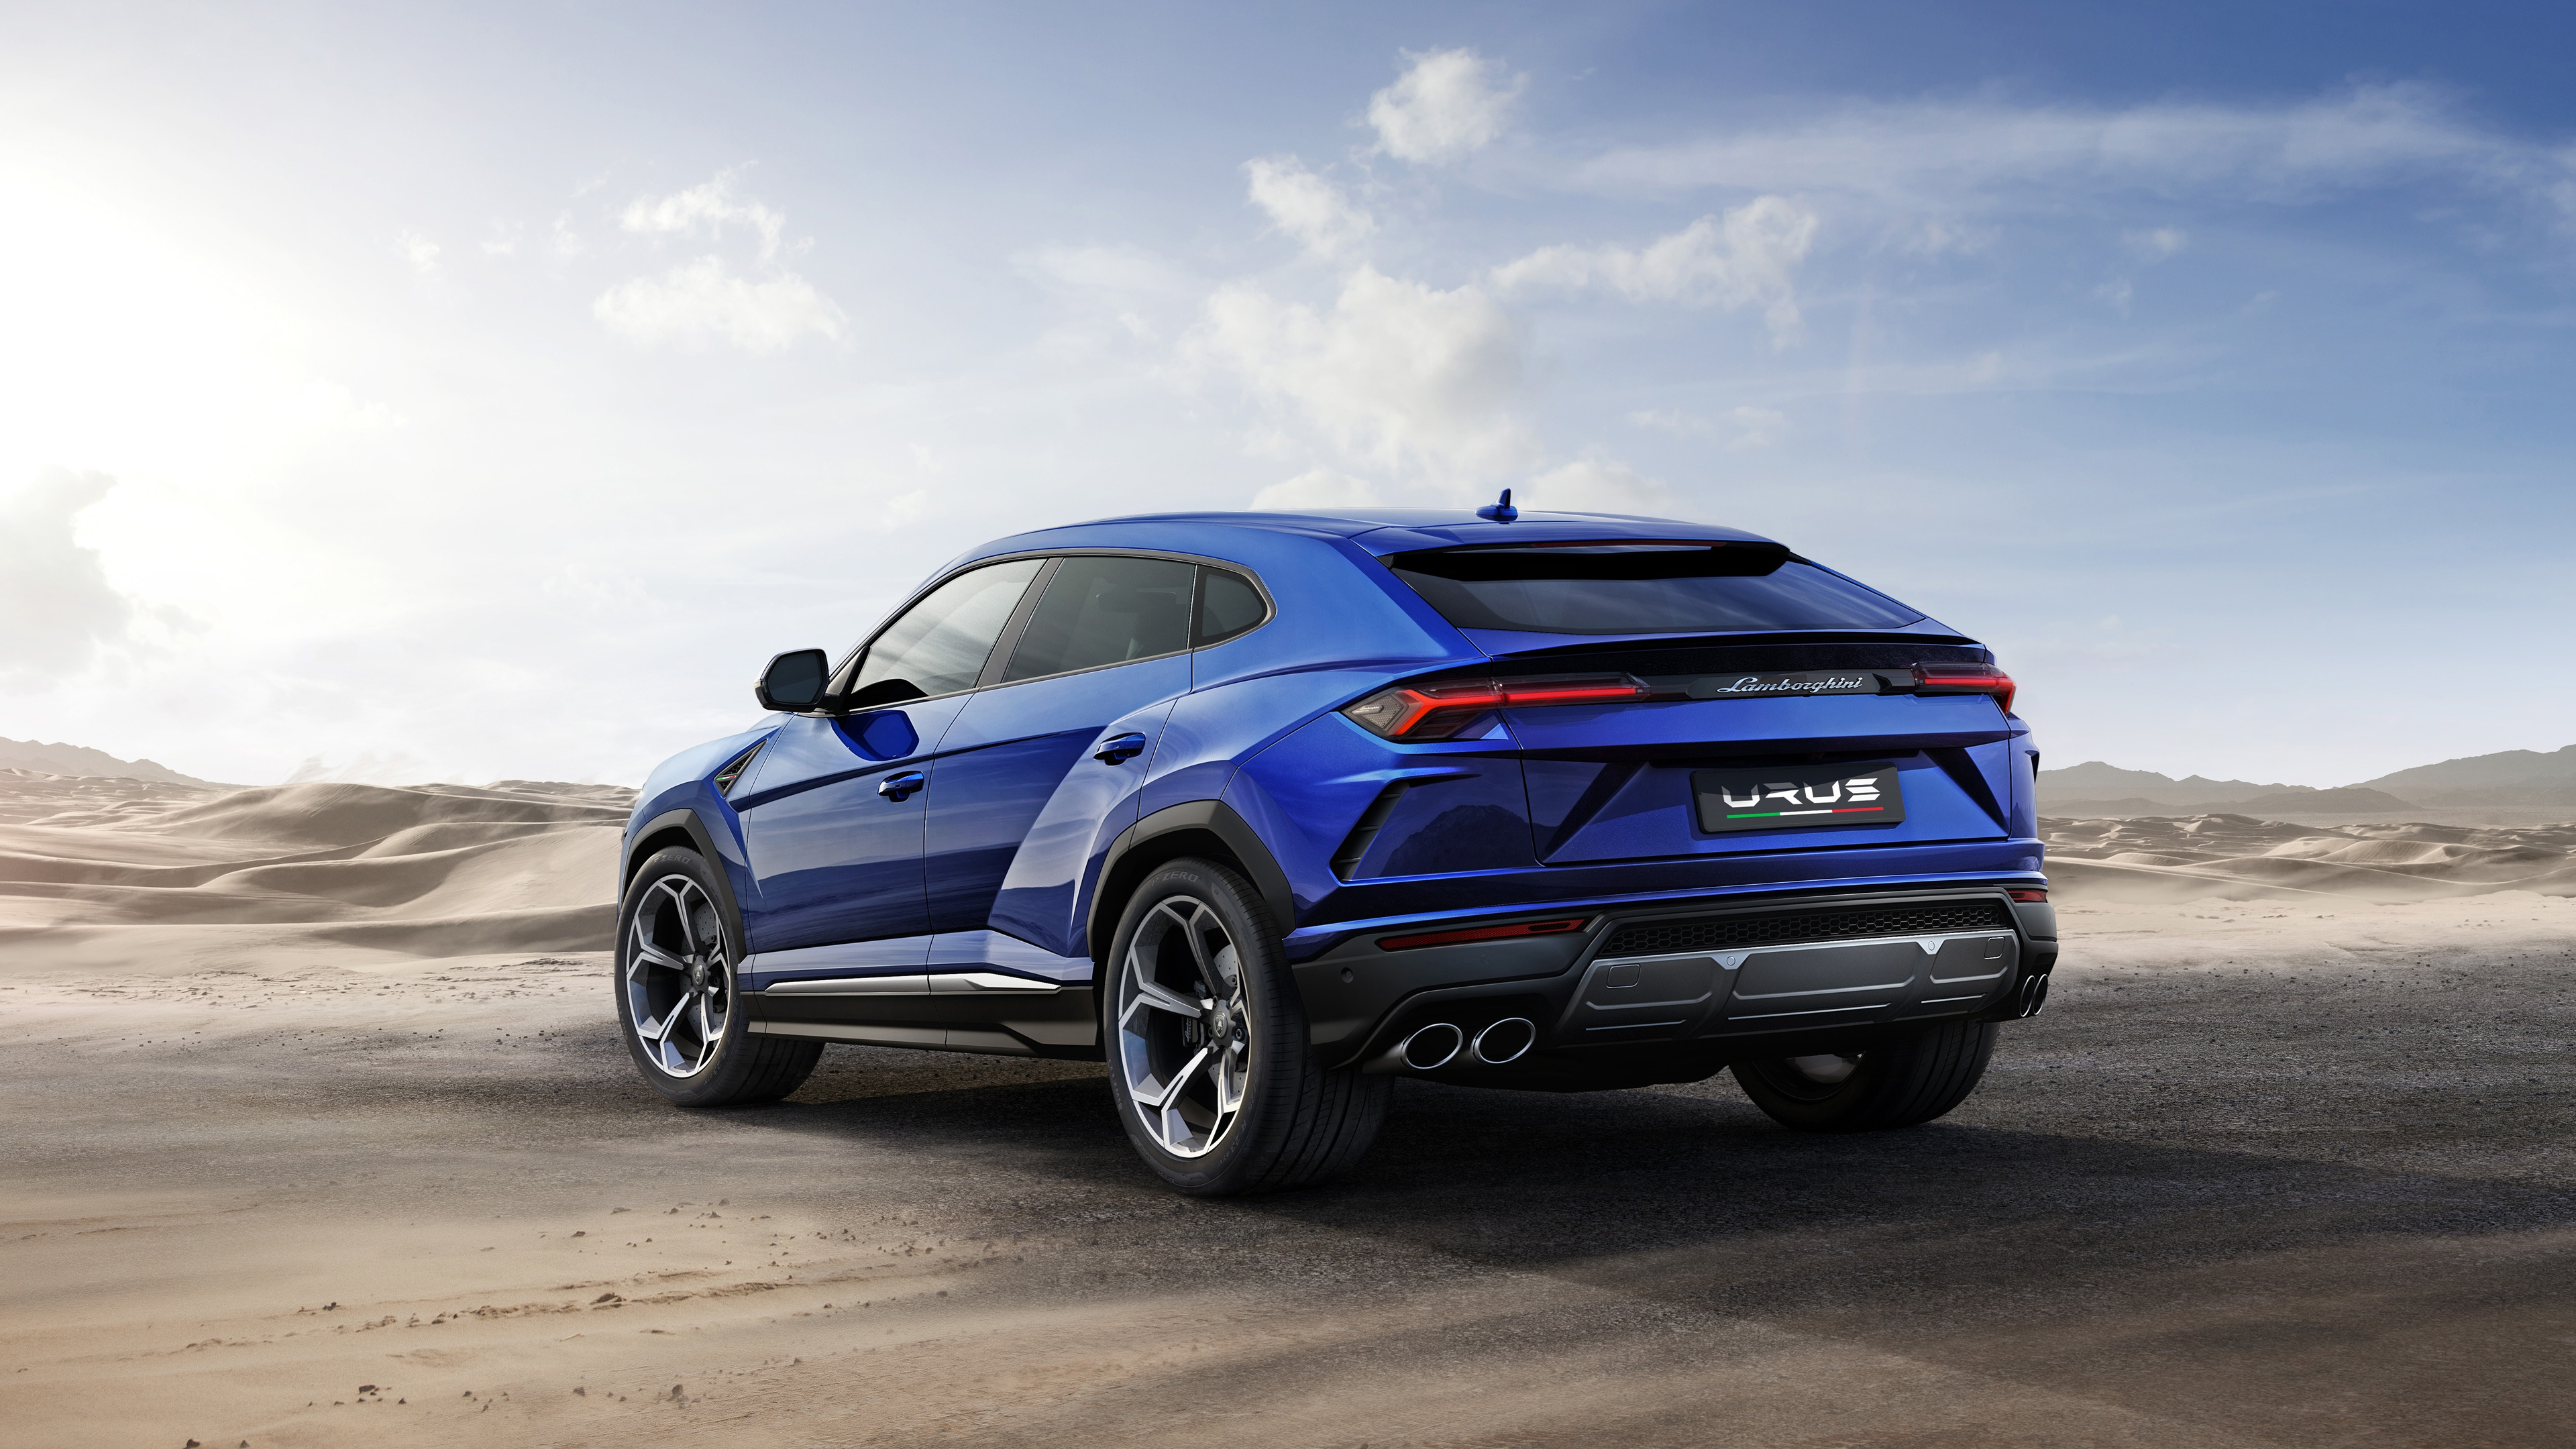 38 Lamborghini Urus Hd Wallpapers Background Images Wallpaper Abyss